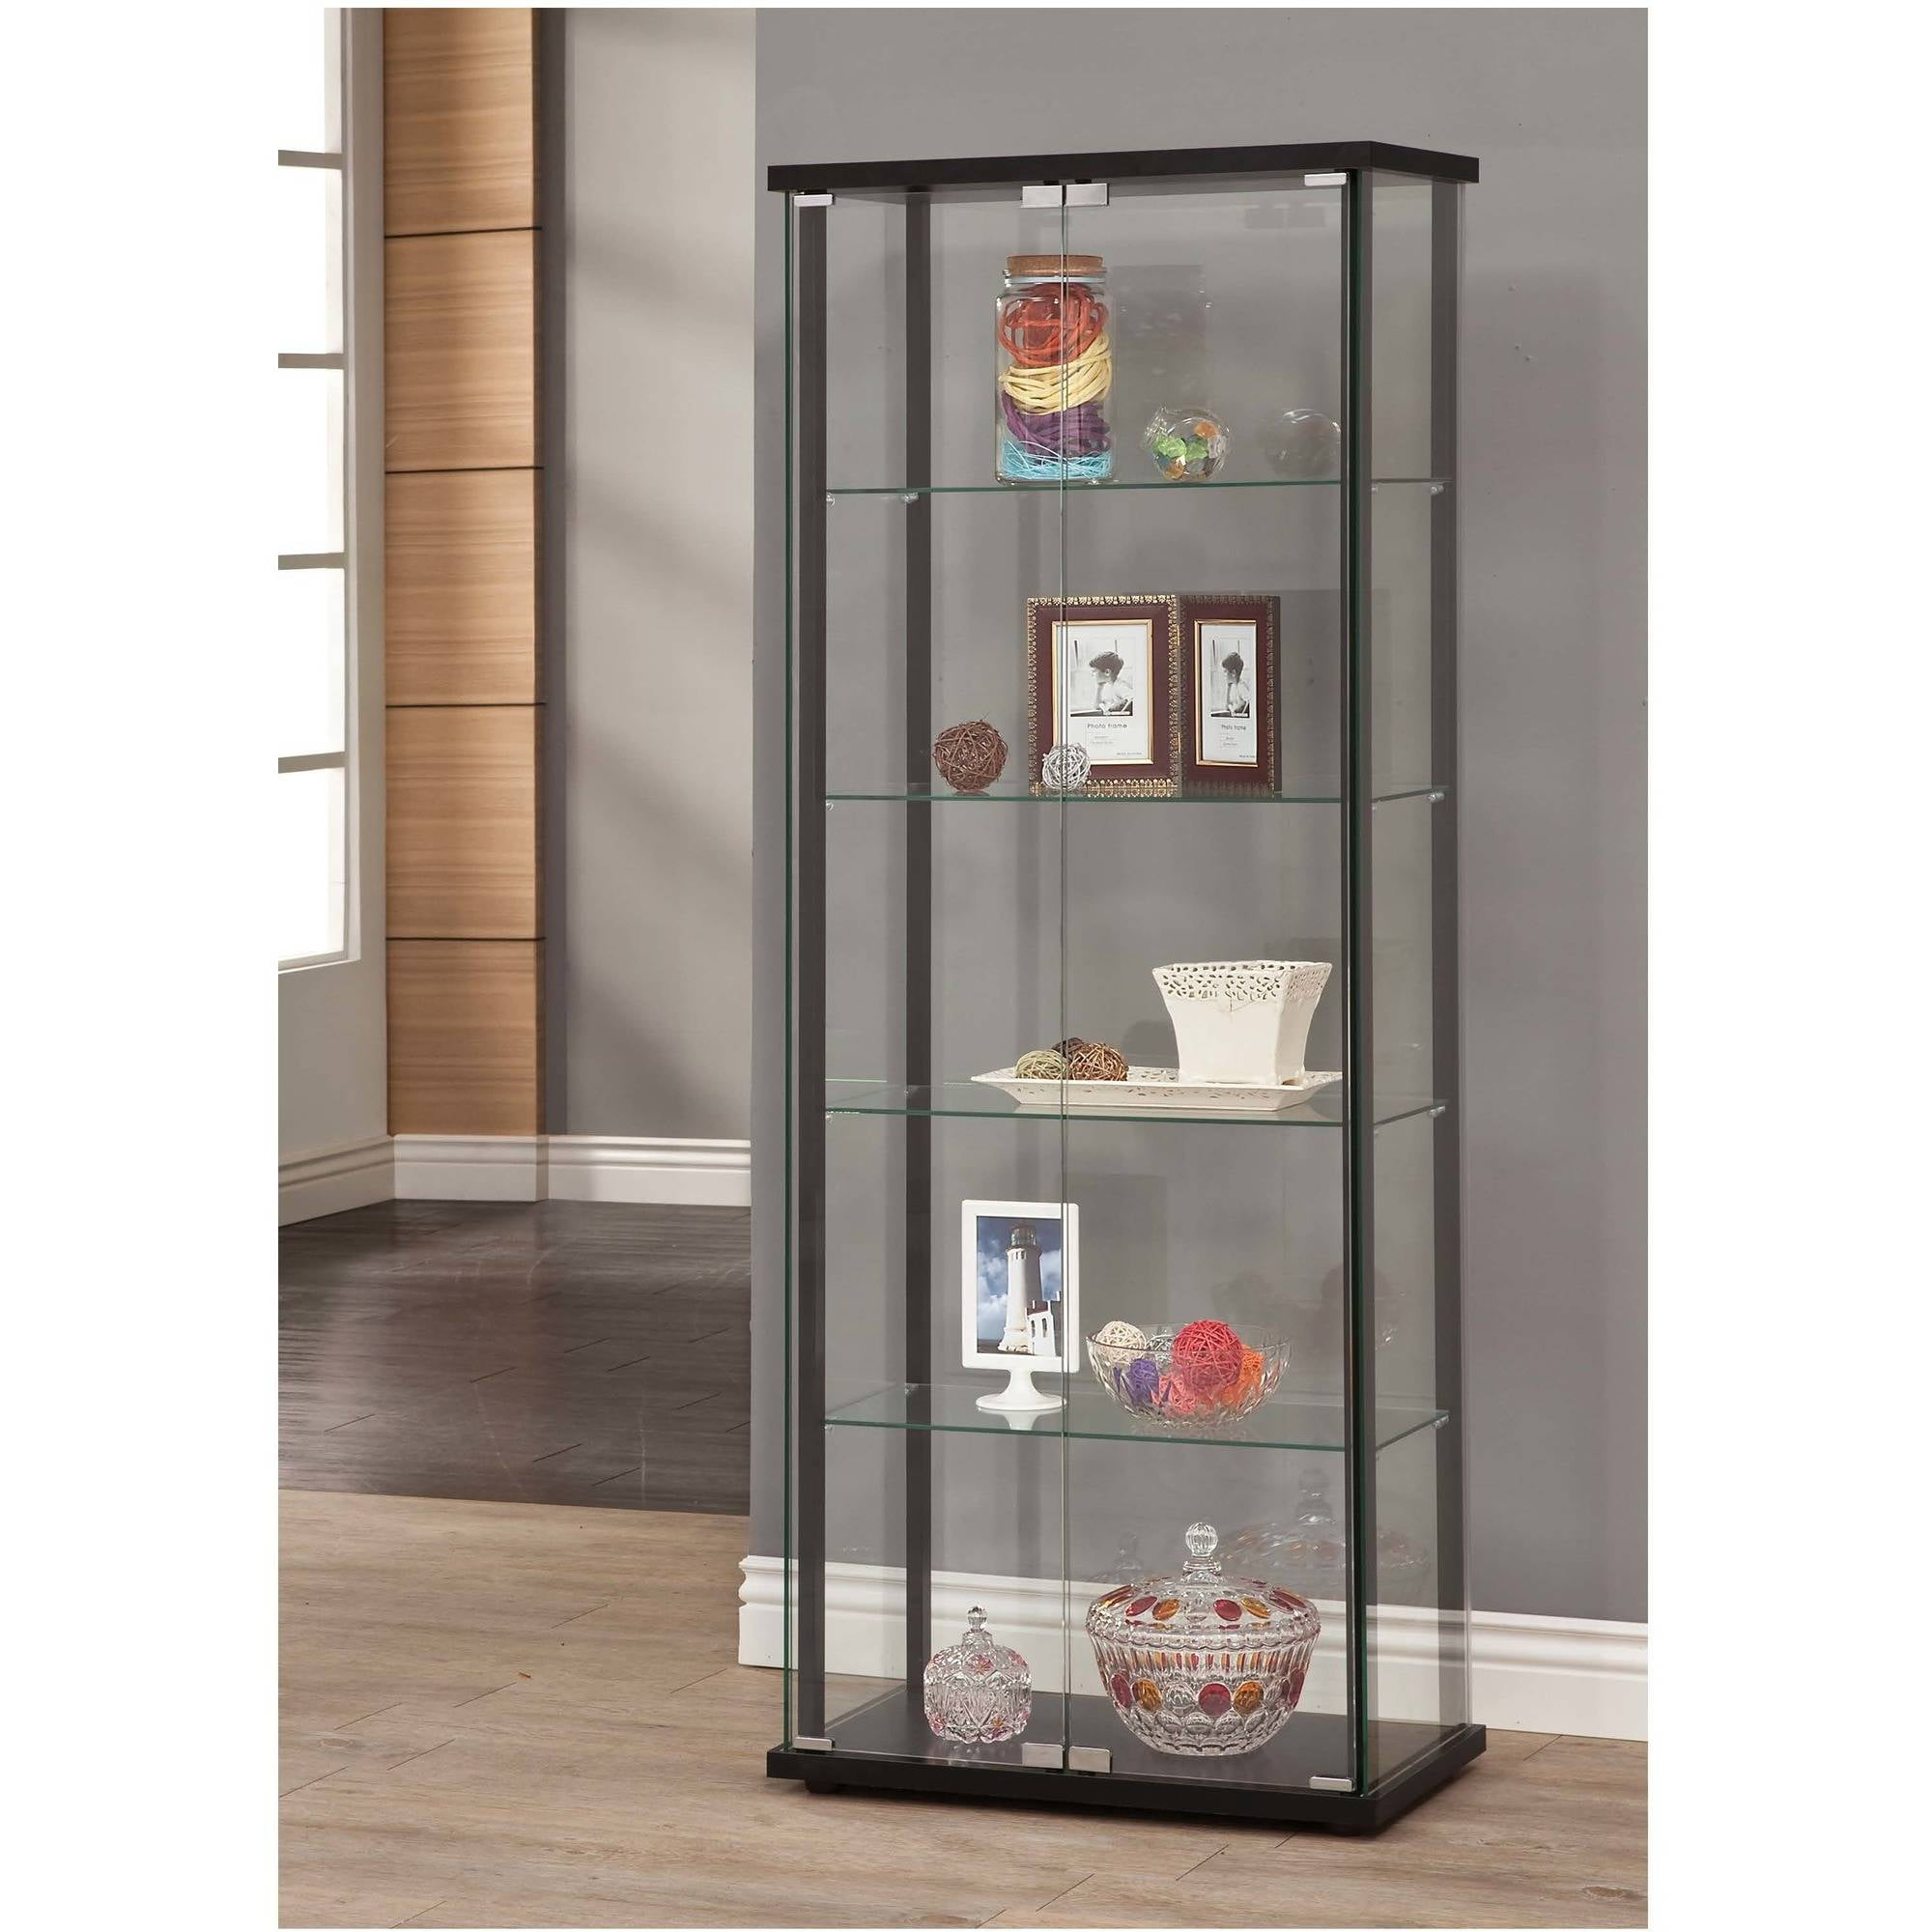 Coaster Company Curio Cabinet, Black and Glass by Coaster Company